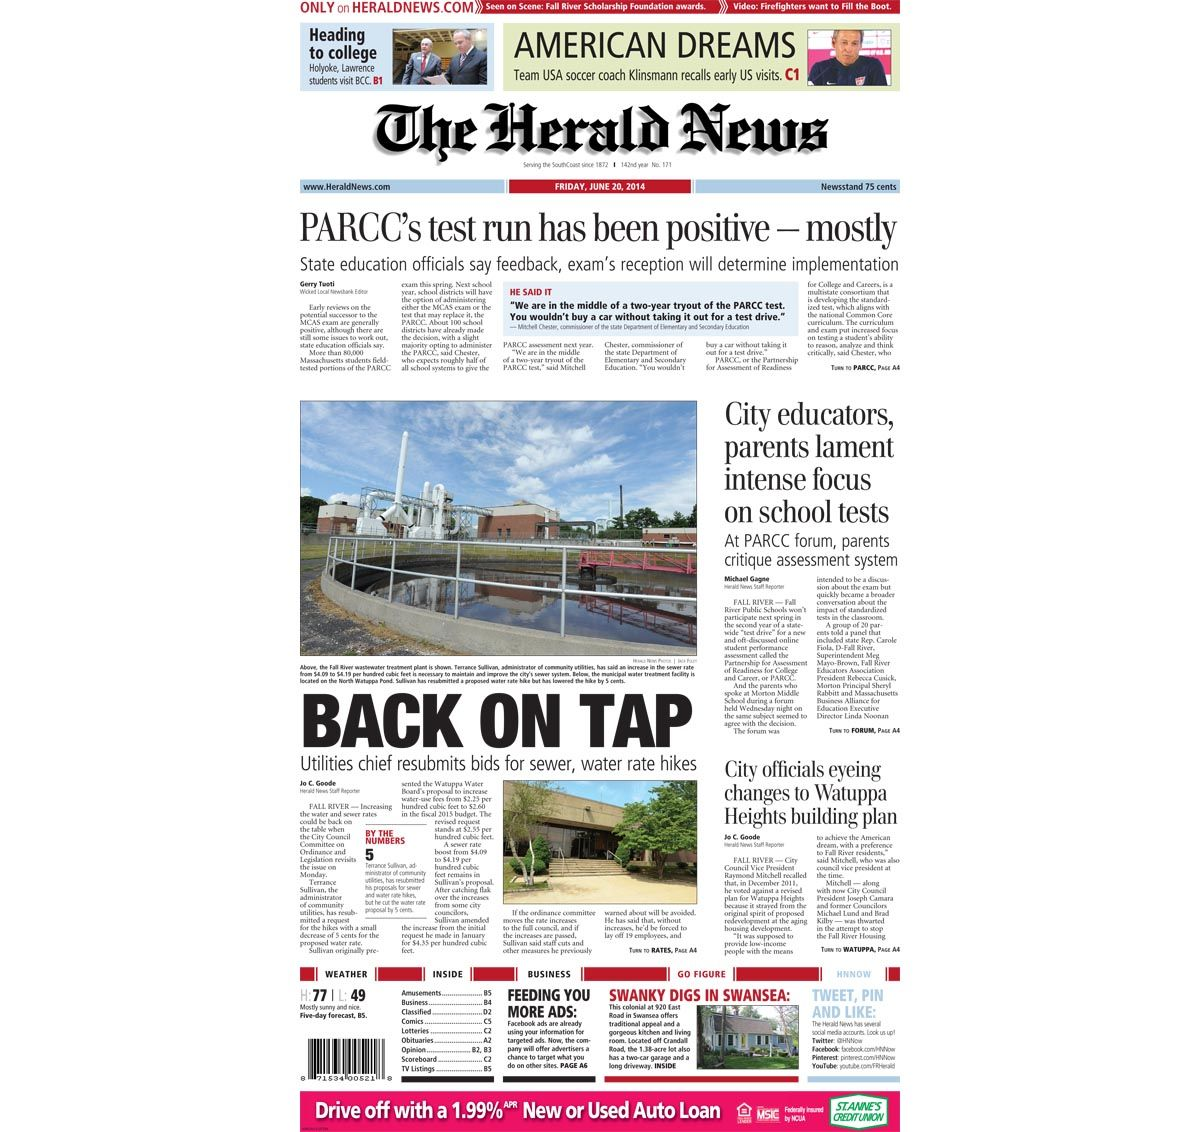 The front page of The Herald News for Friday, June 9, 914